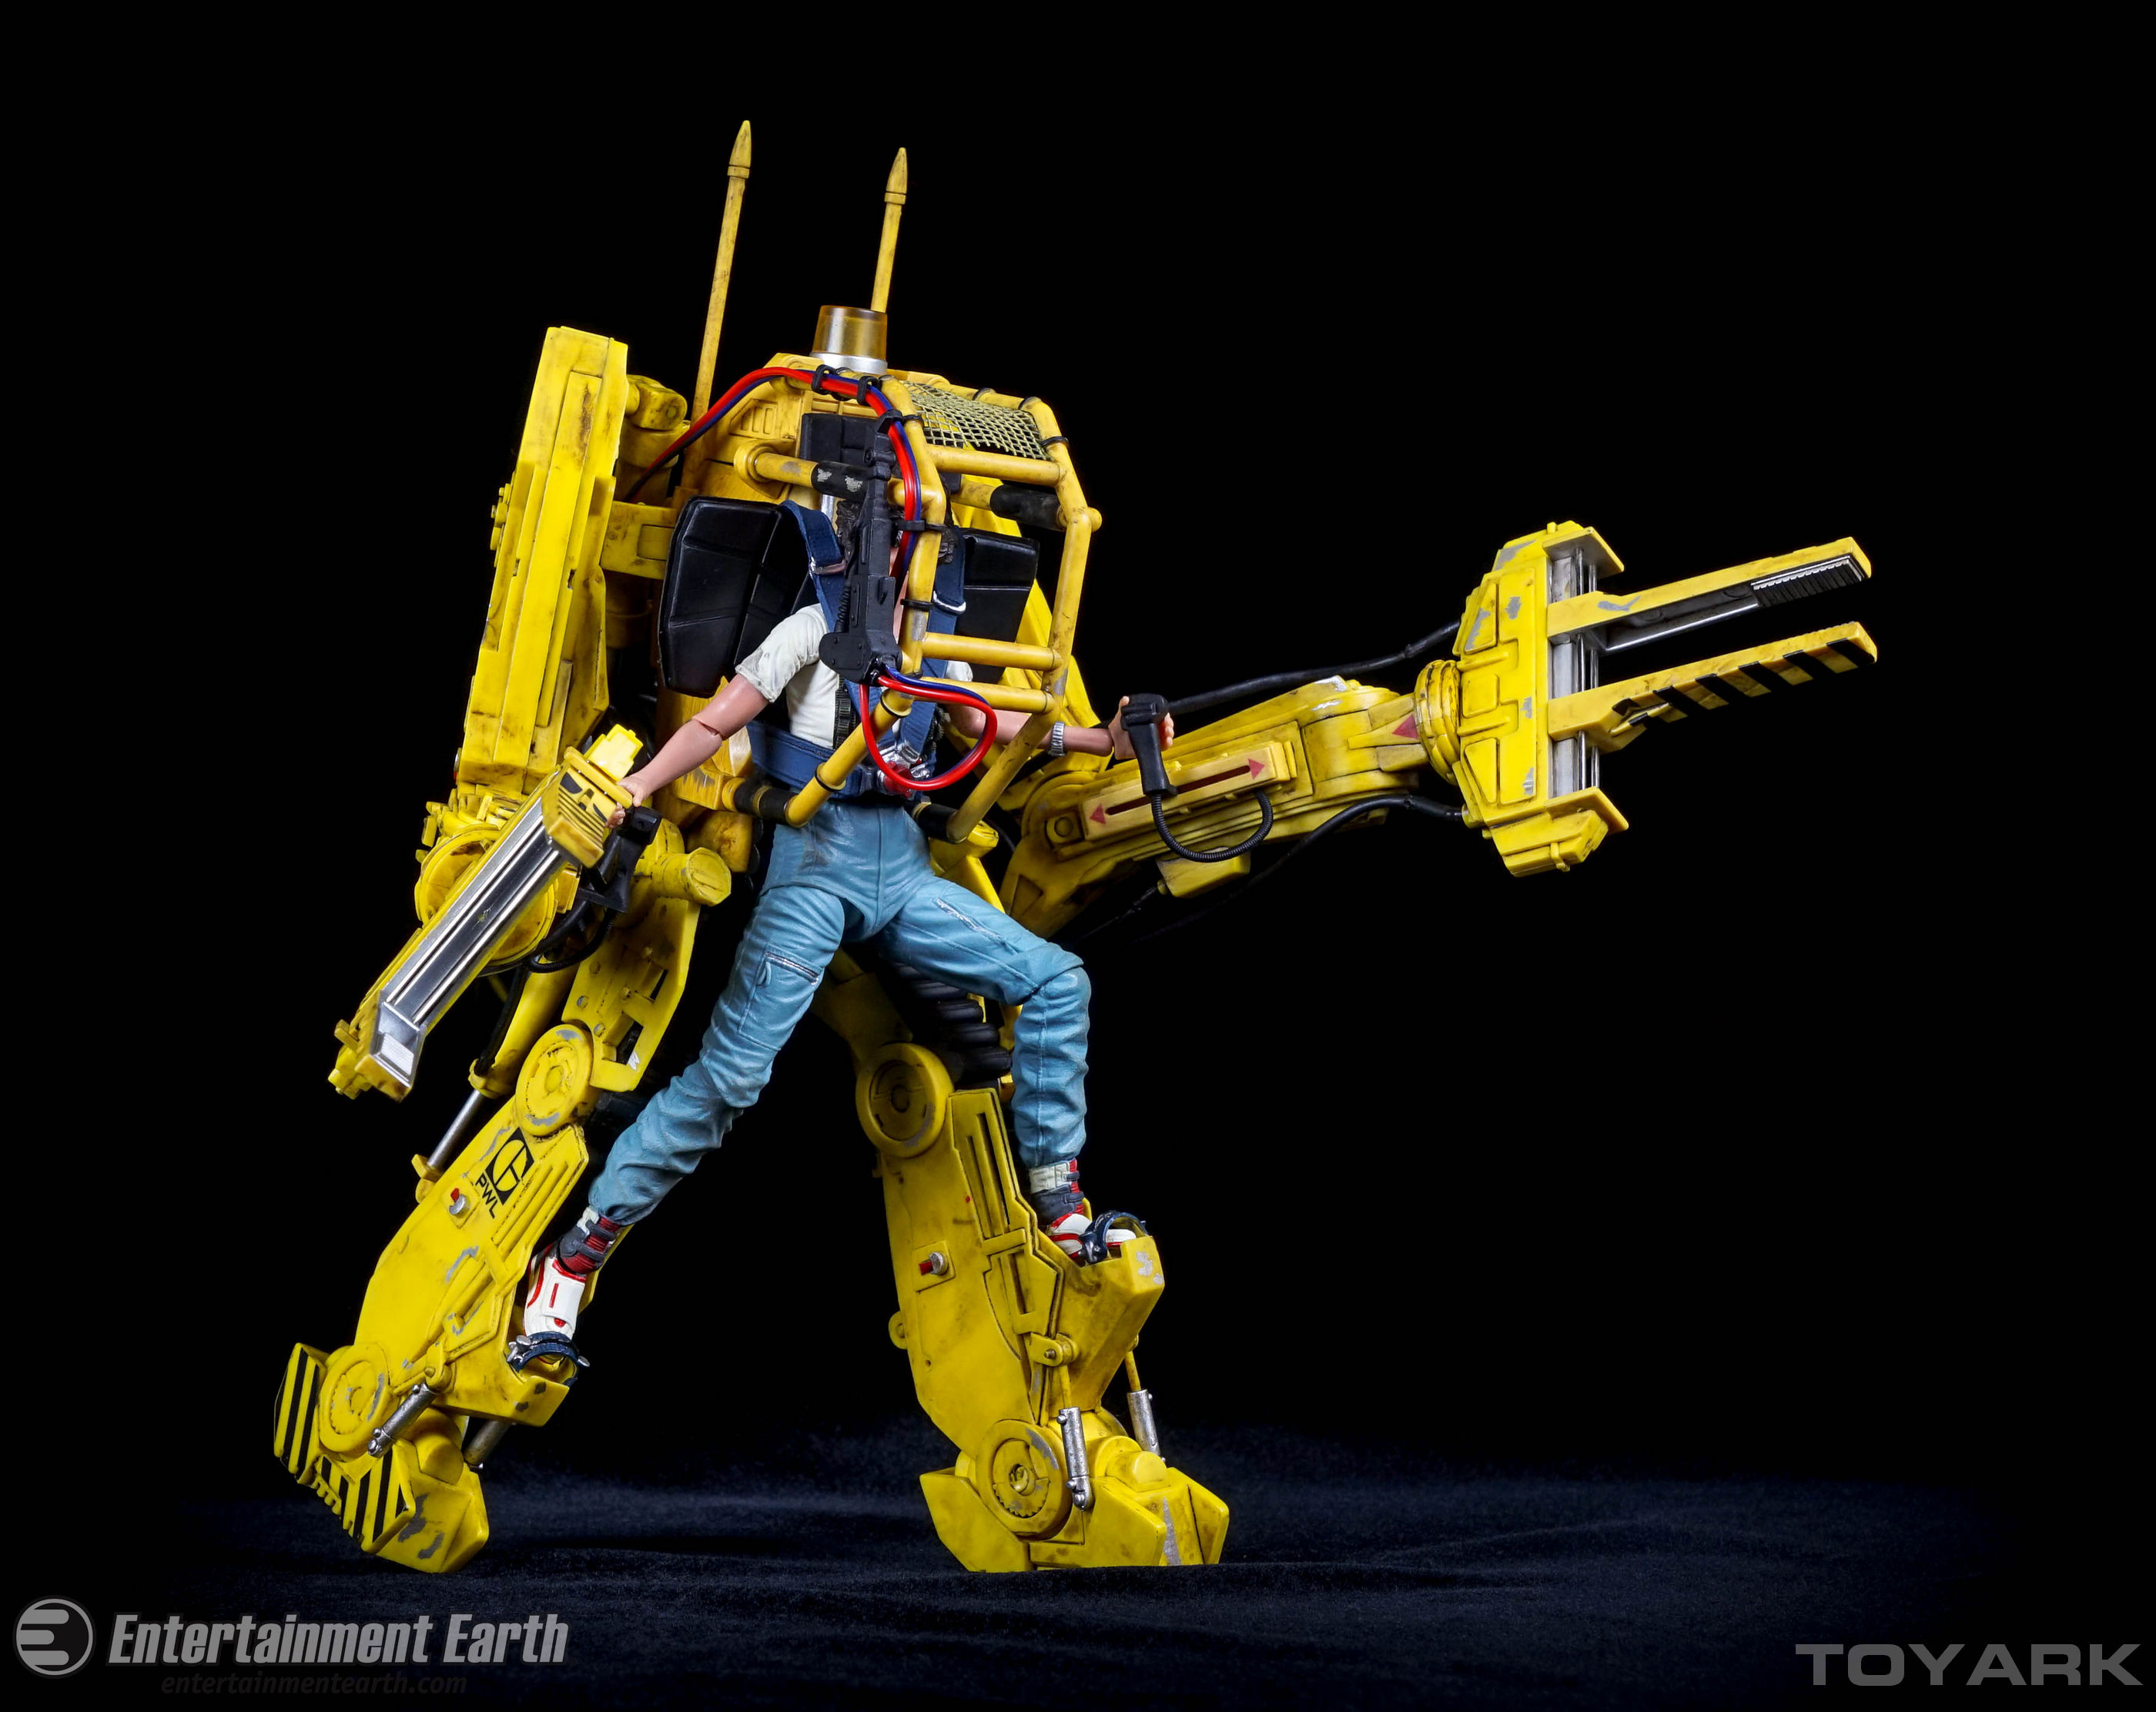 http://news.toyark.com/wp-content/uploads/sites/4/2015/10/NECA-Aliens-Power-Loader-049.jpg